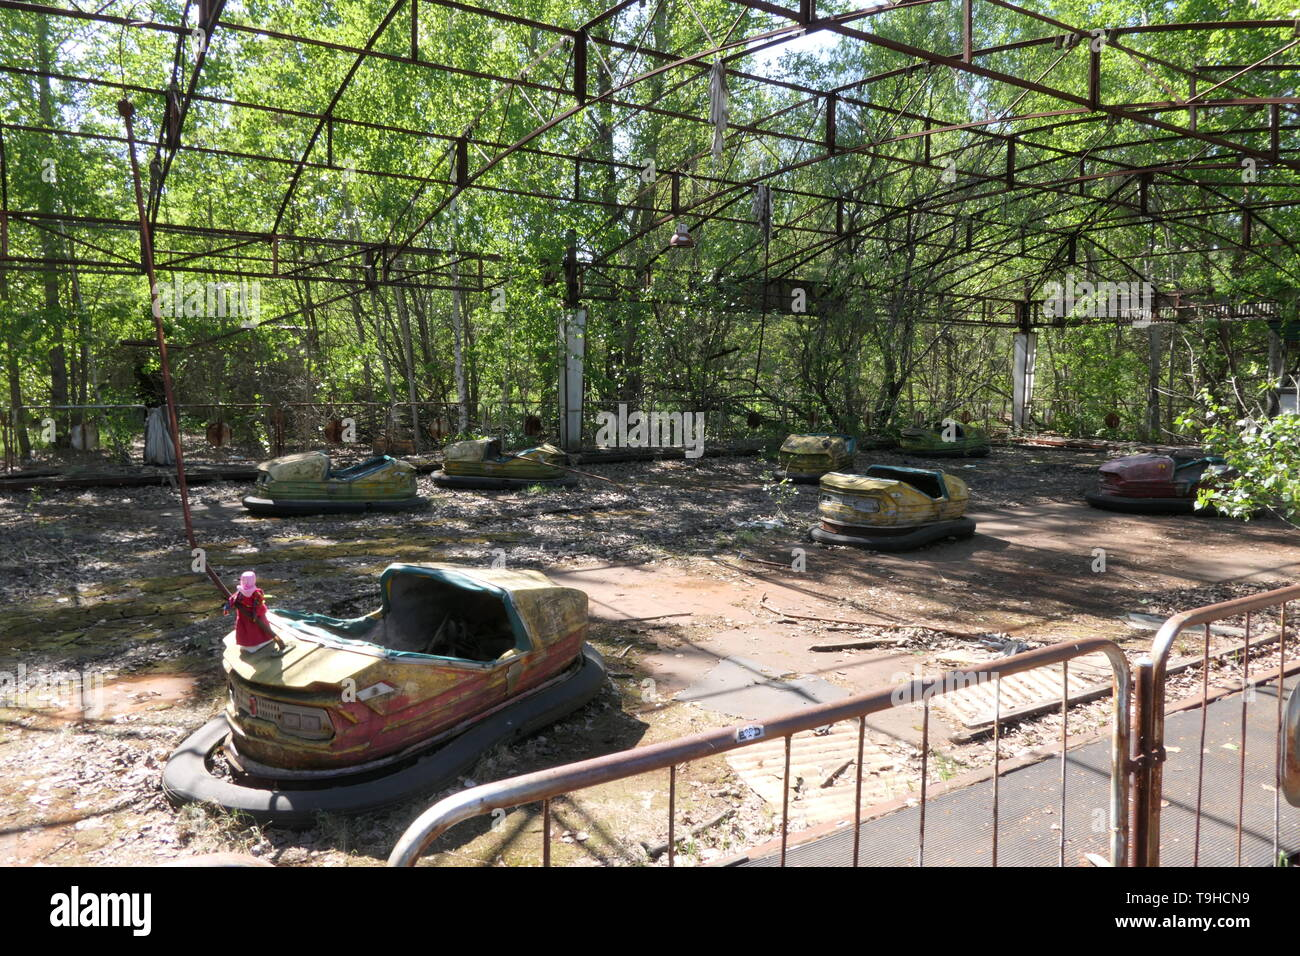 Bumper Cars in the abandoned Pripyat amusement park, Chernobyl exclusion zone, Ukraine - Stock Image